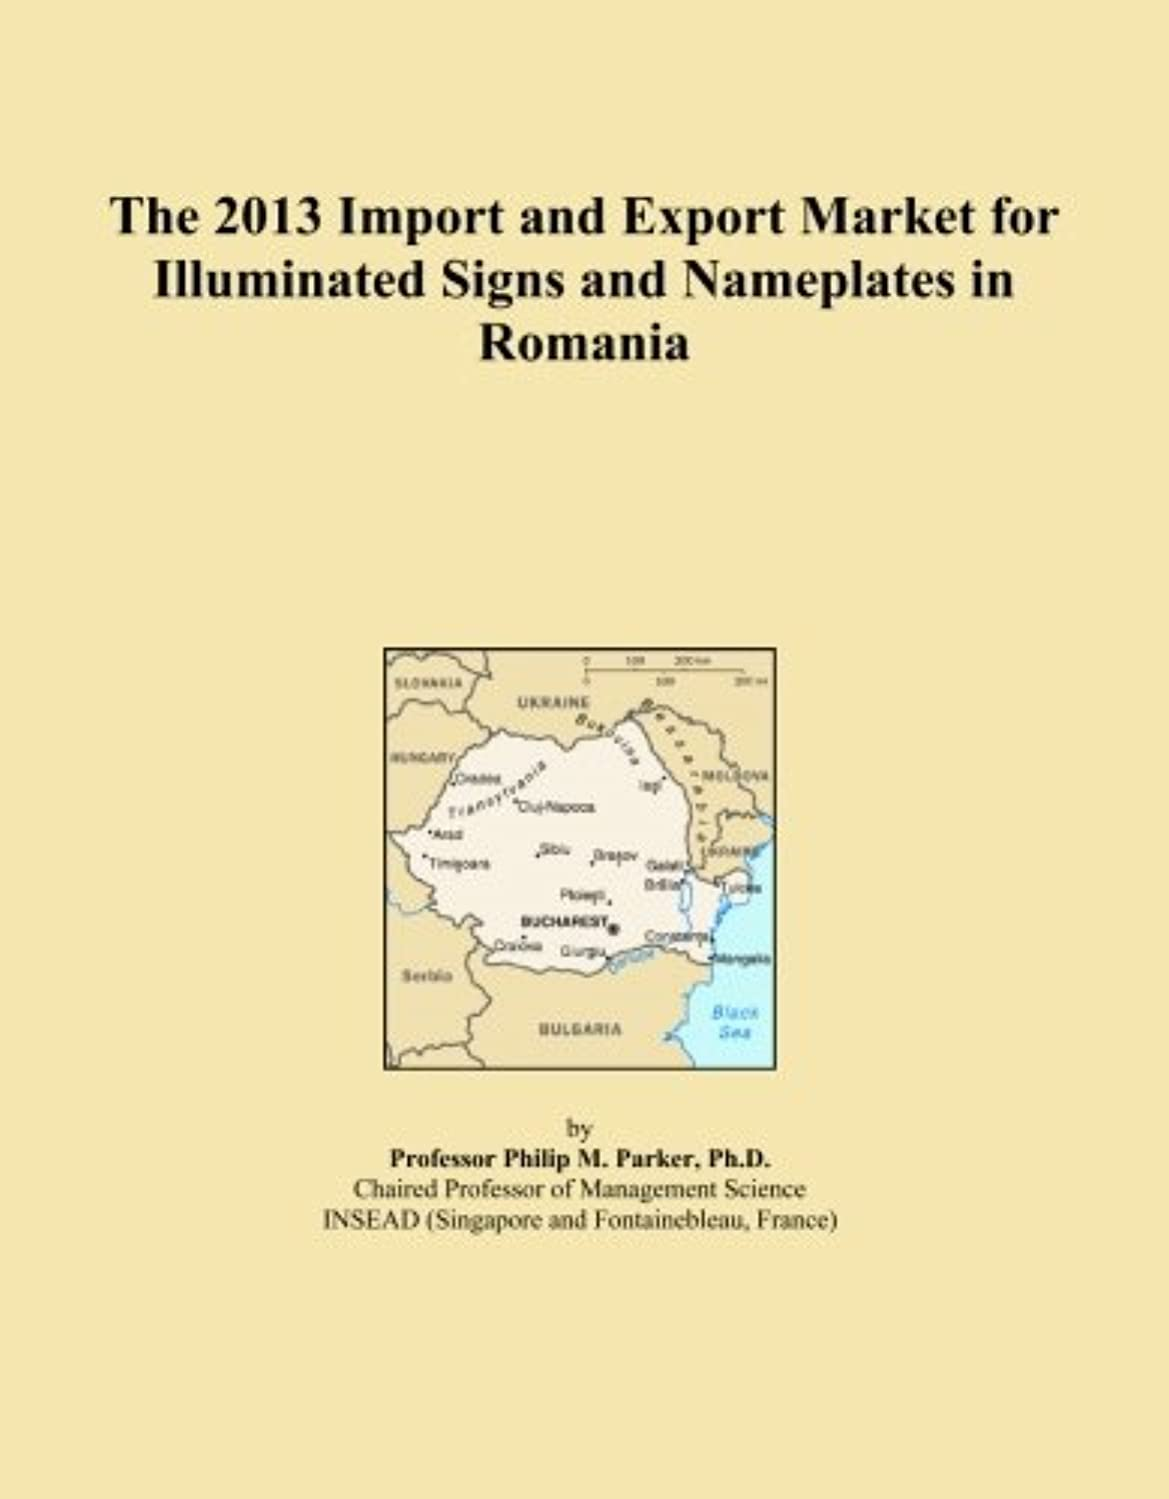 The 2013 Import and Export Market for Illuminated Signs and Nameplates in Romania